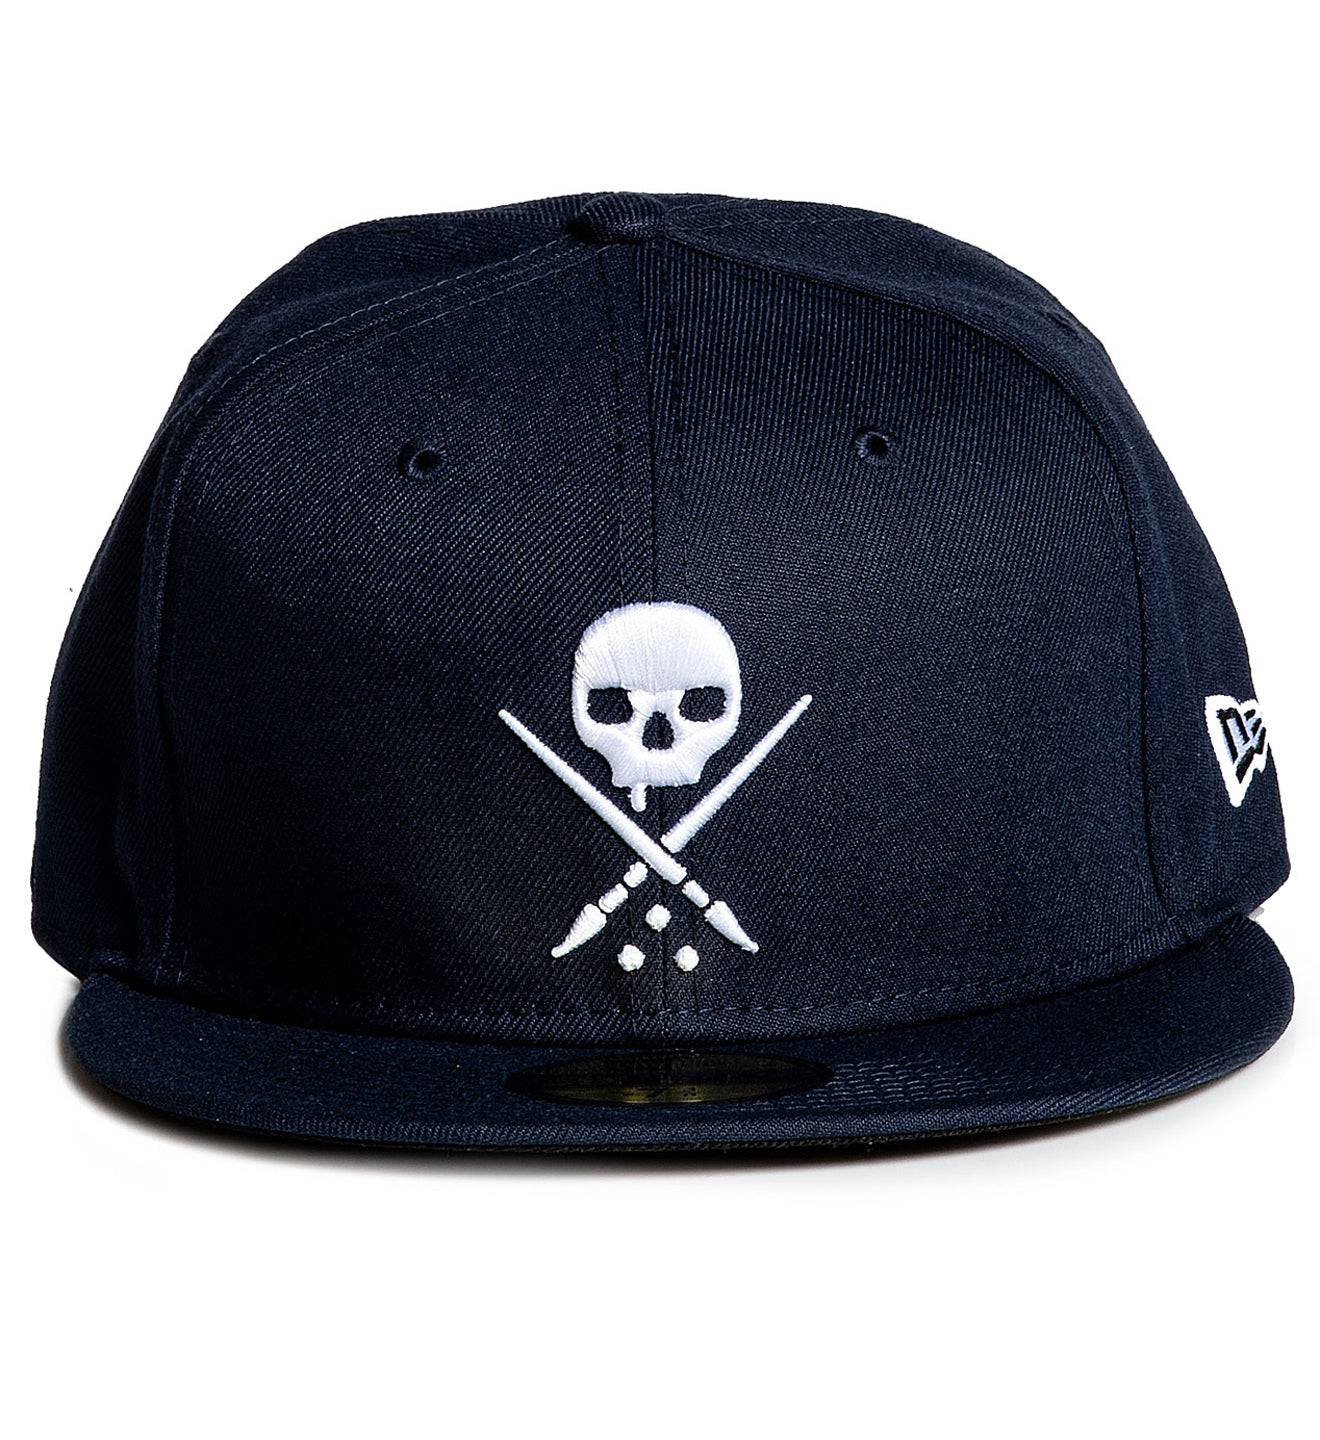 Mens Fitted Badge Navy, NAVY / 73/4